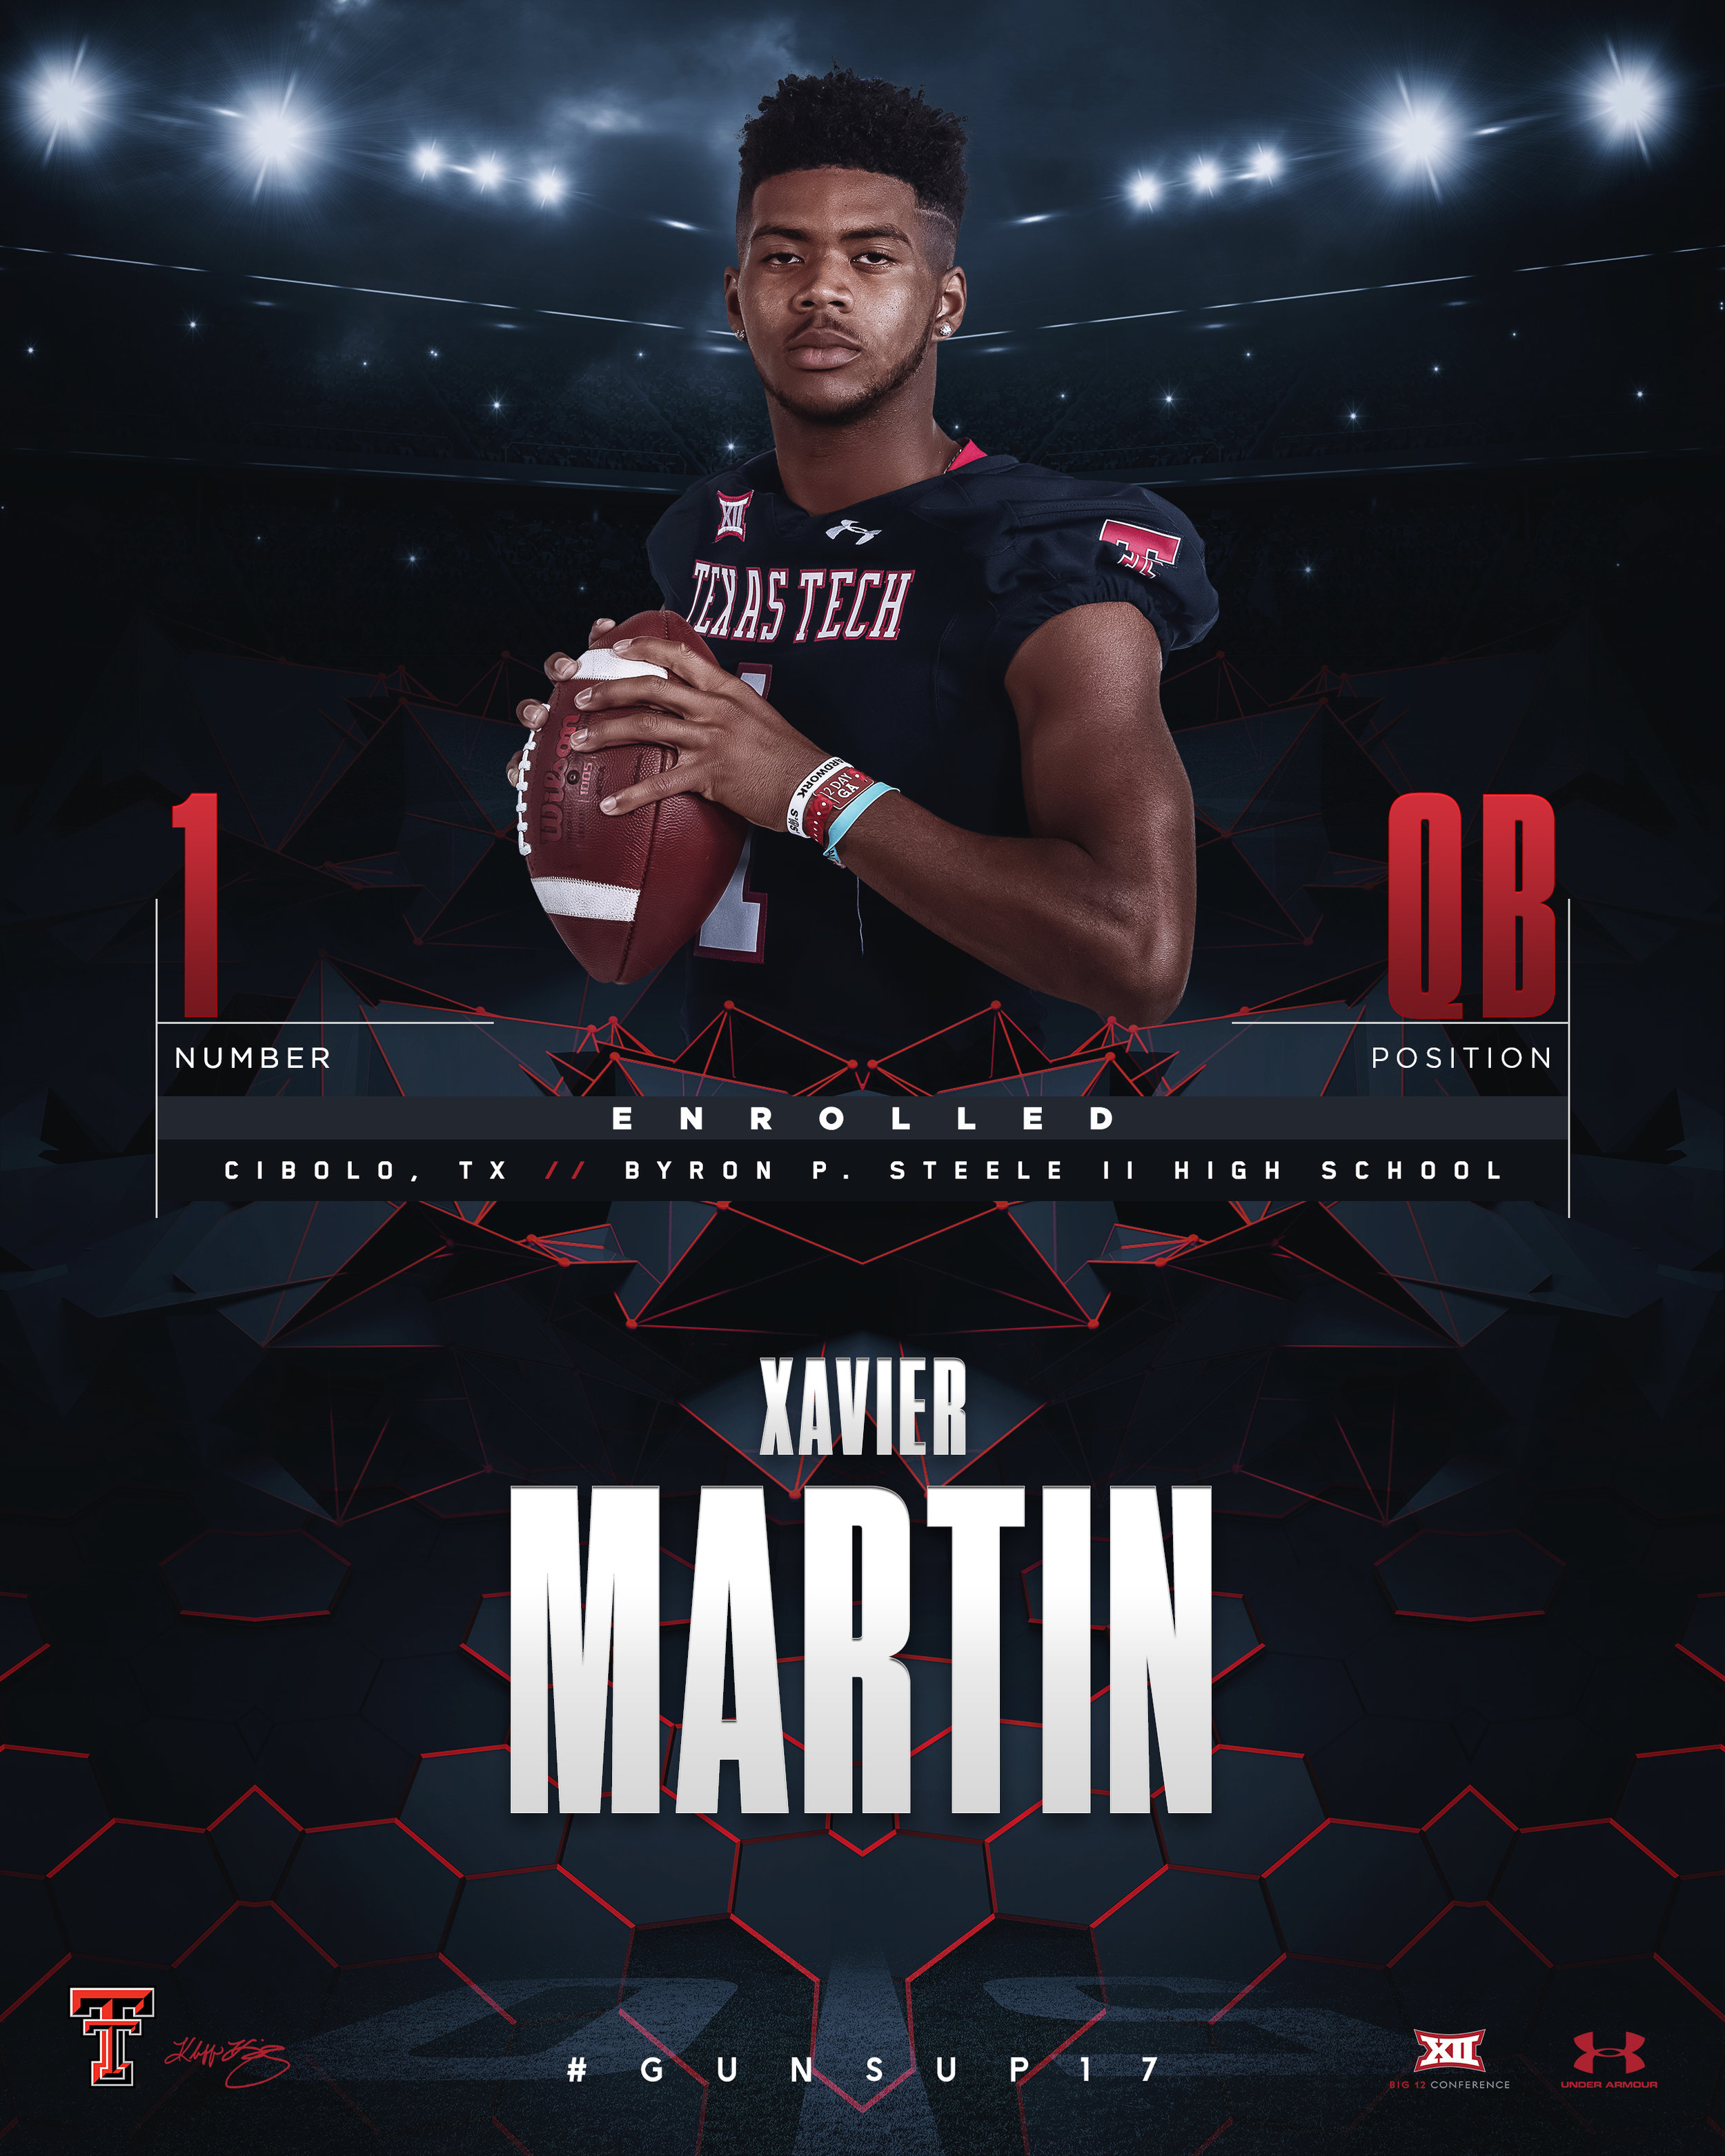 TTU_Xavier_Martin_Early_Enrollee_Graphic